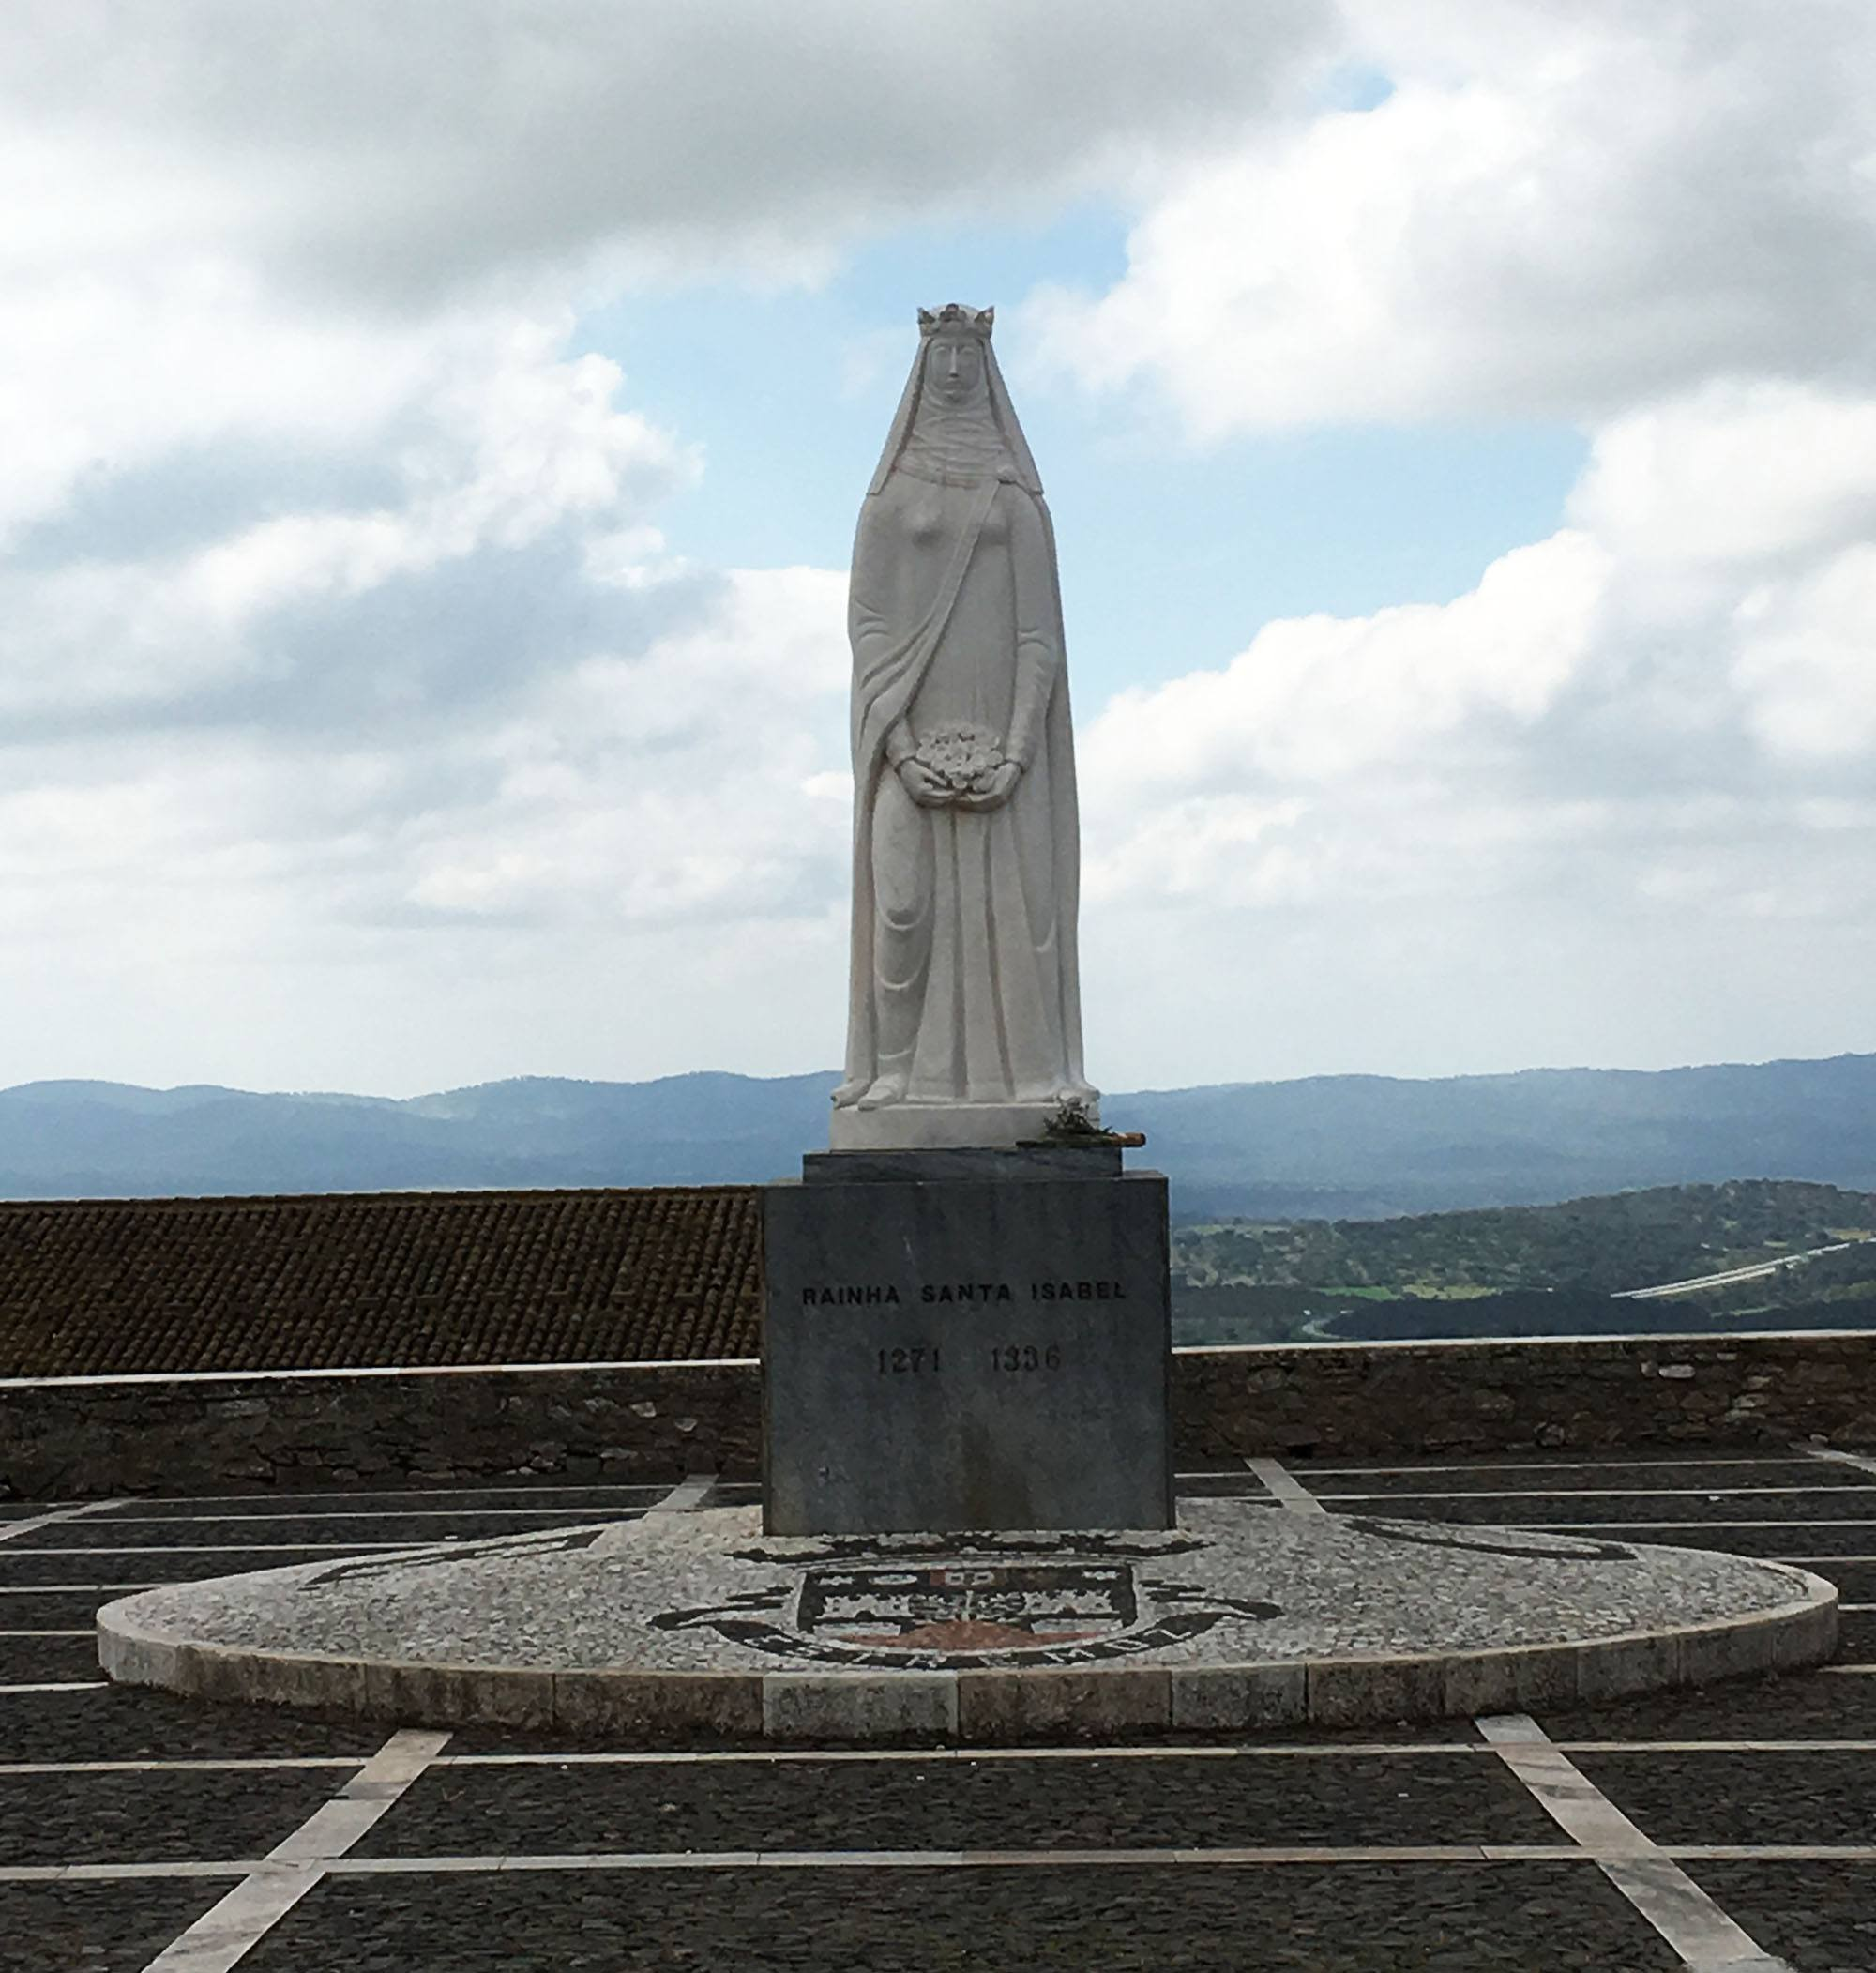 Outside of Estremoz Castle is a statue of Queen Isabel, for whom the castle was built. (Kevin Chong)